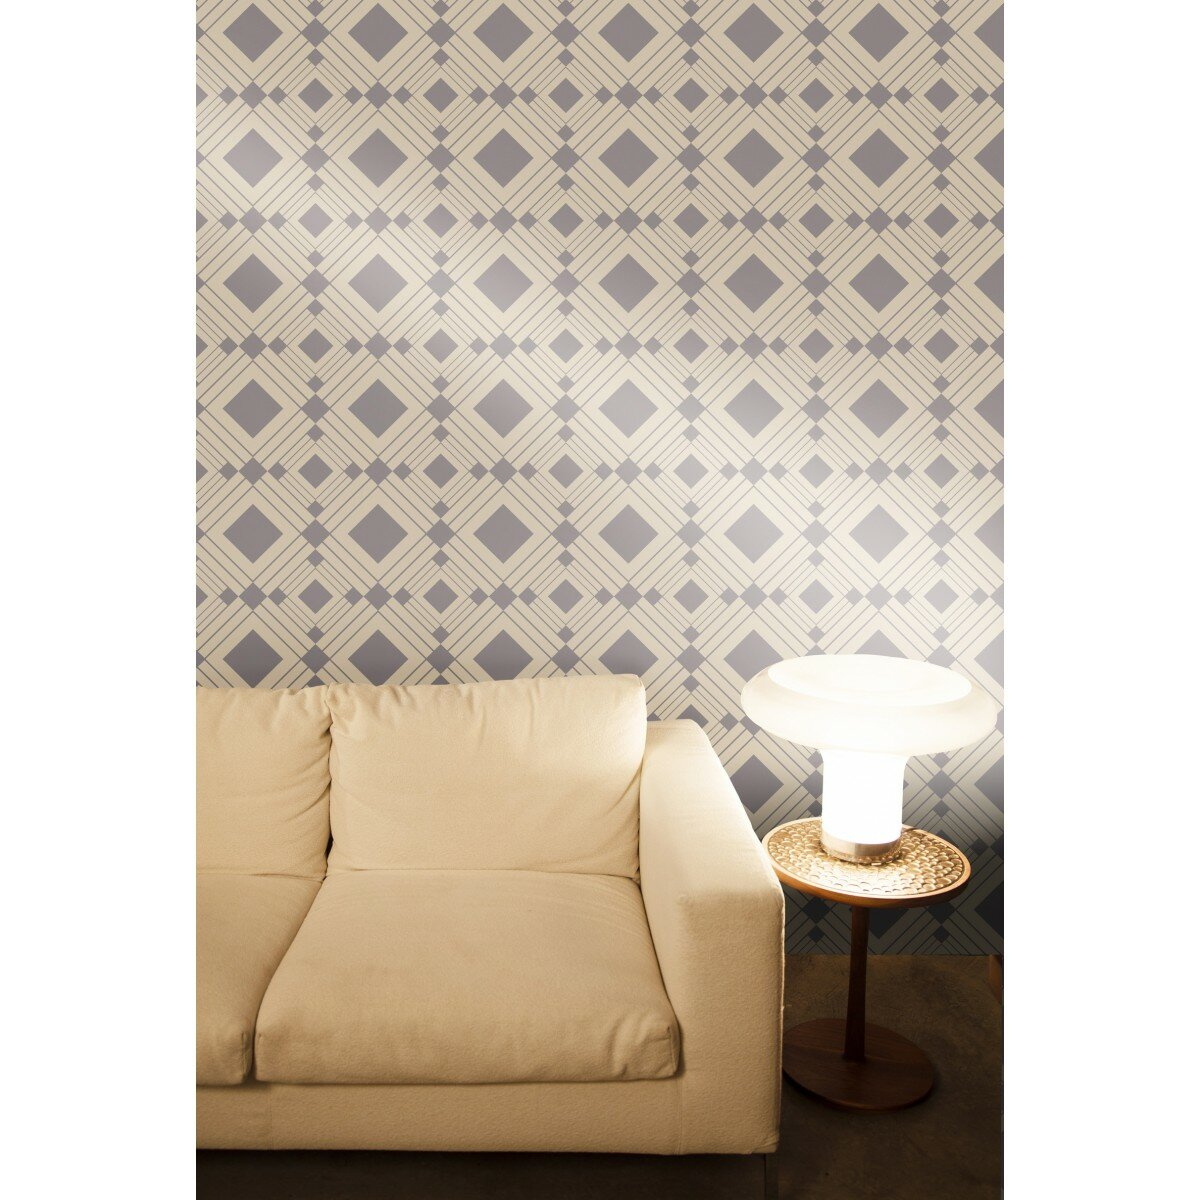 Tempaper Tempaper Diamond Self Adhesive Removable